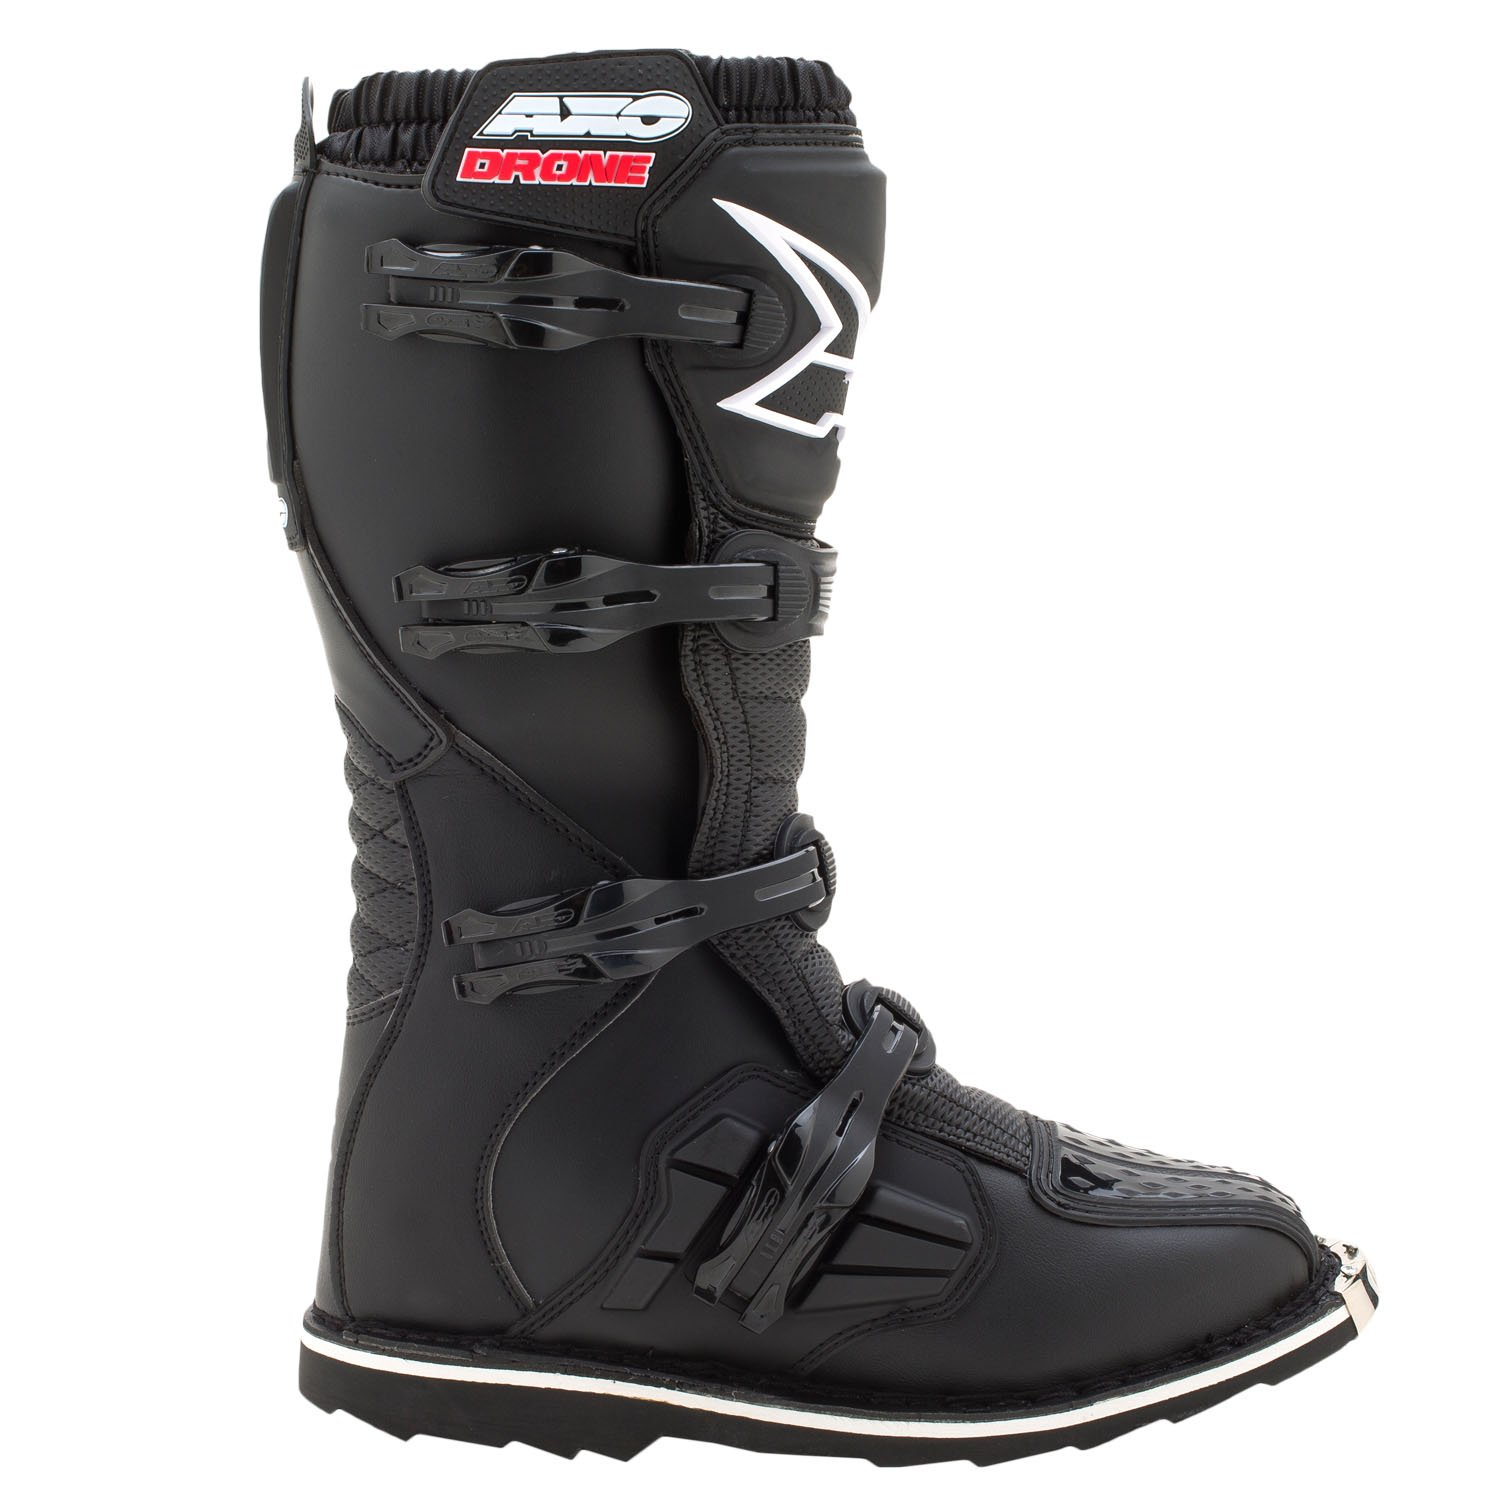 Black, Size 9 11000-05-090 AXO Drone Boots